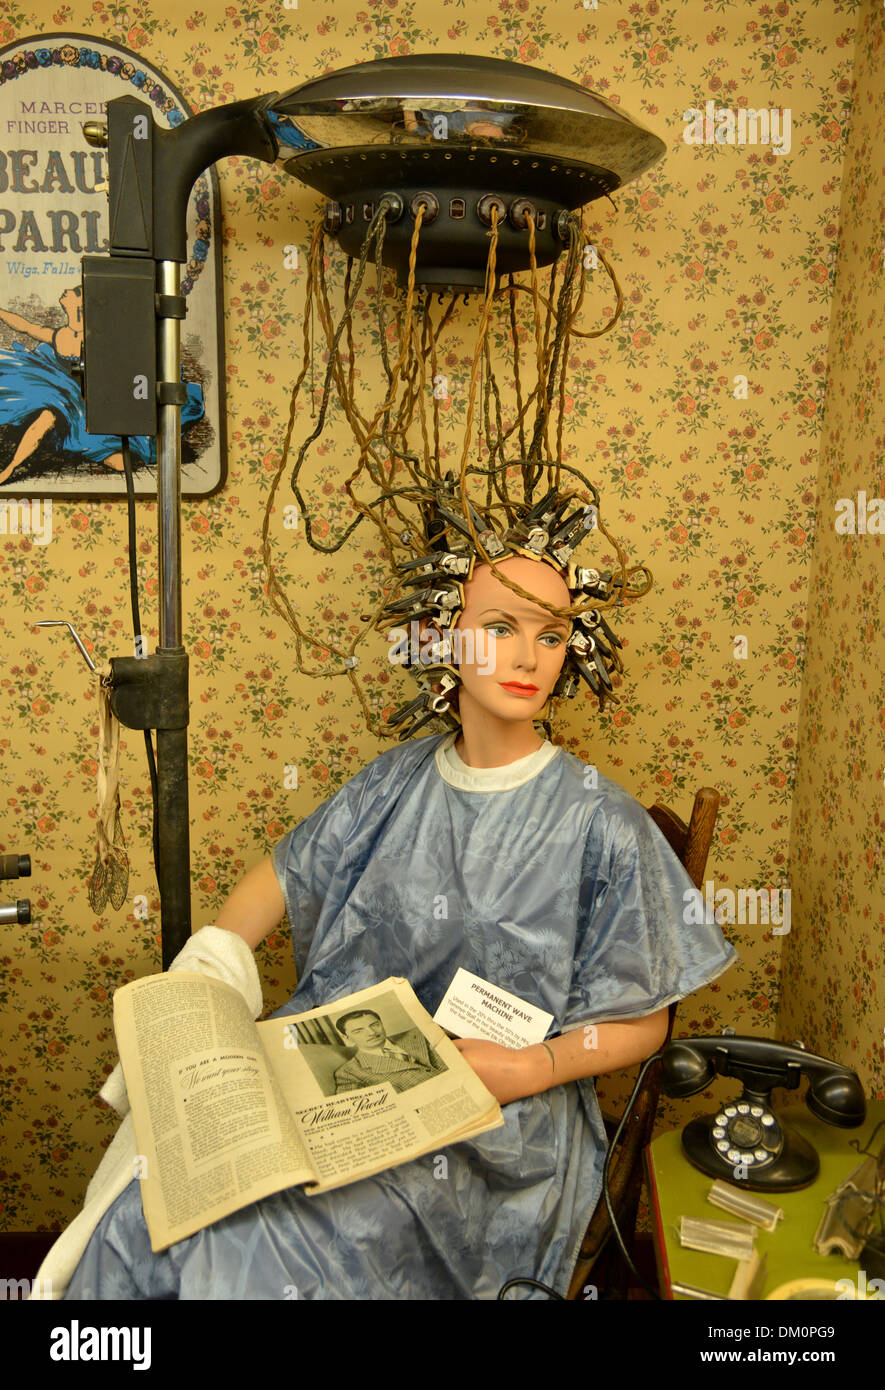 Terrifying 1930s hair curler looks like an instrument of torture in the National Route 66 Museum, Elk City, Oklahoma - Stock Image